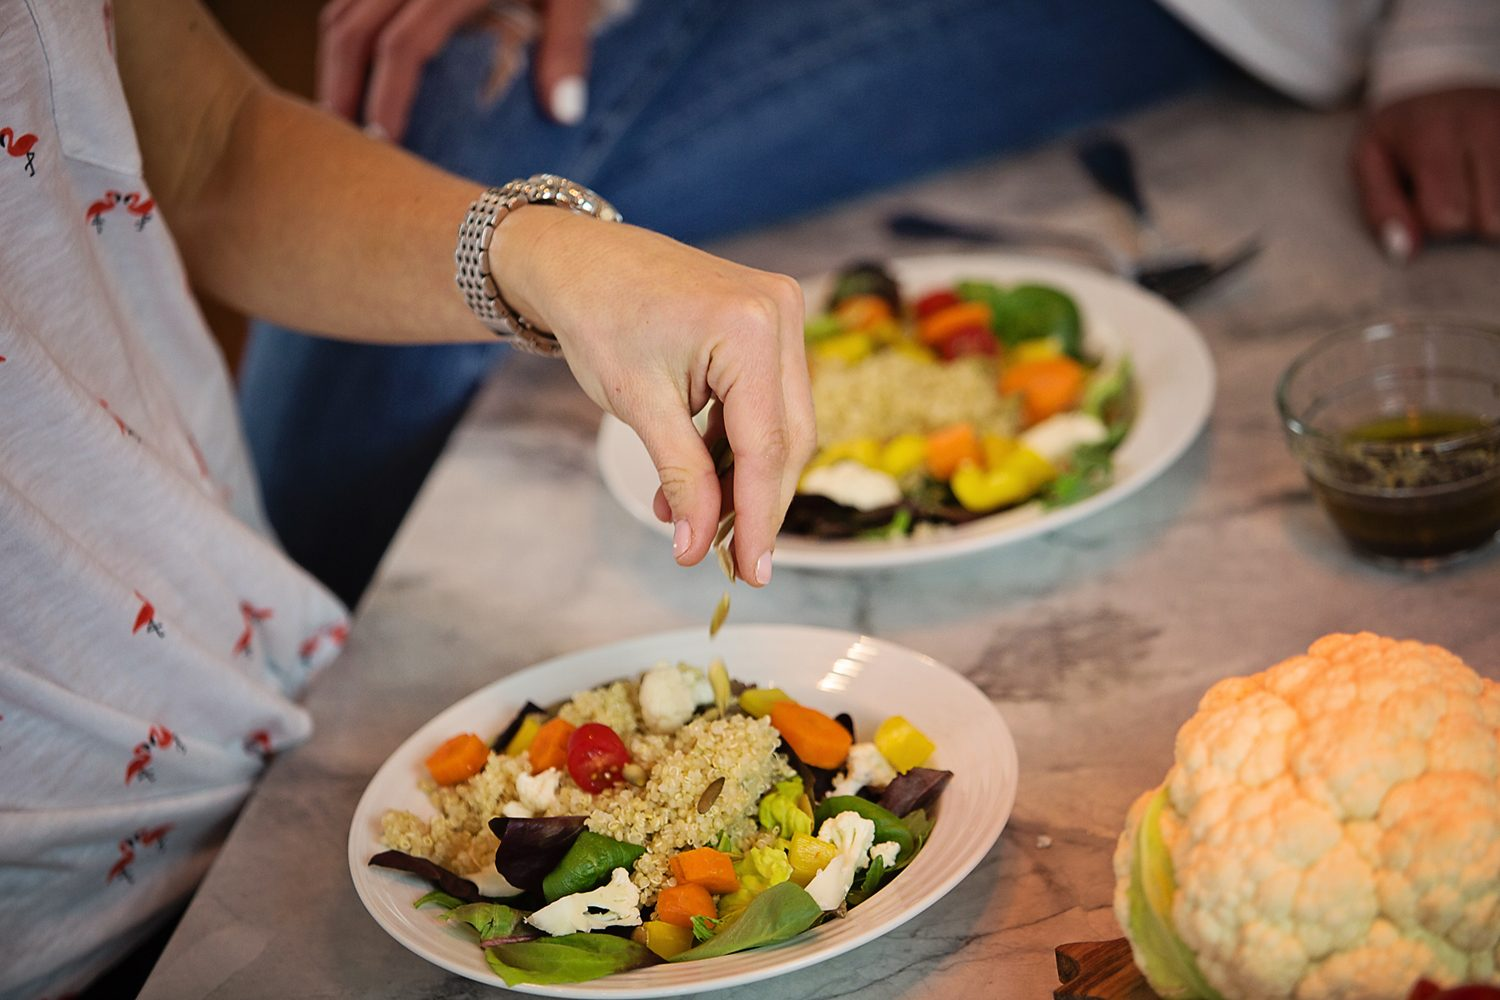 The Motherchic power lunch salad recipe